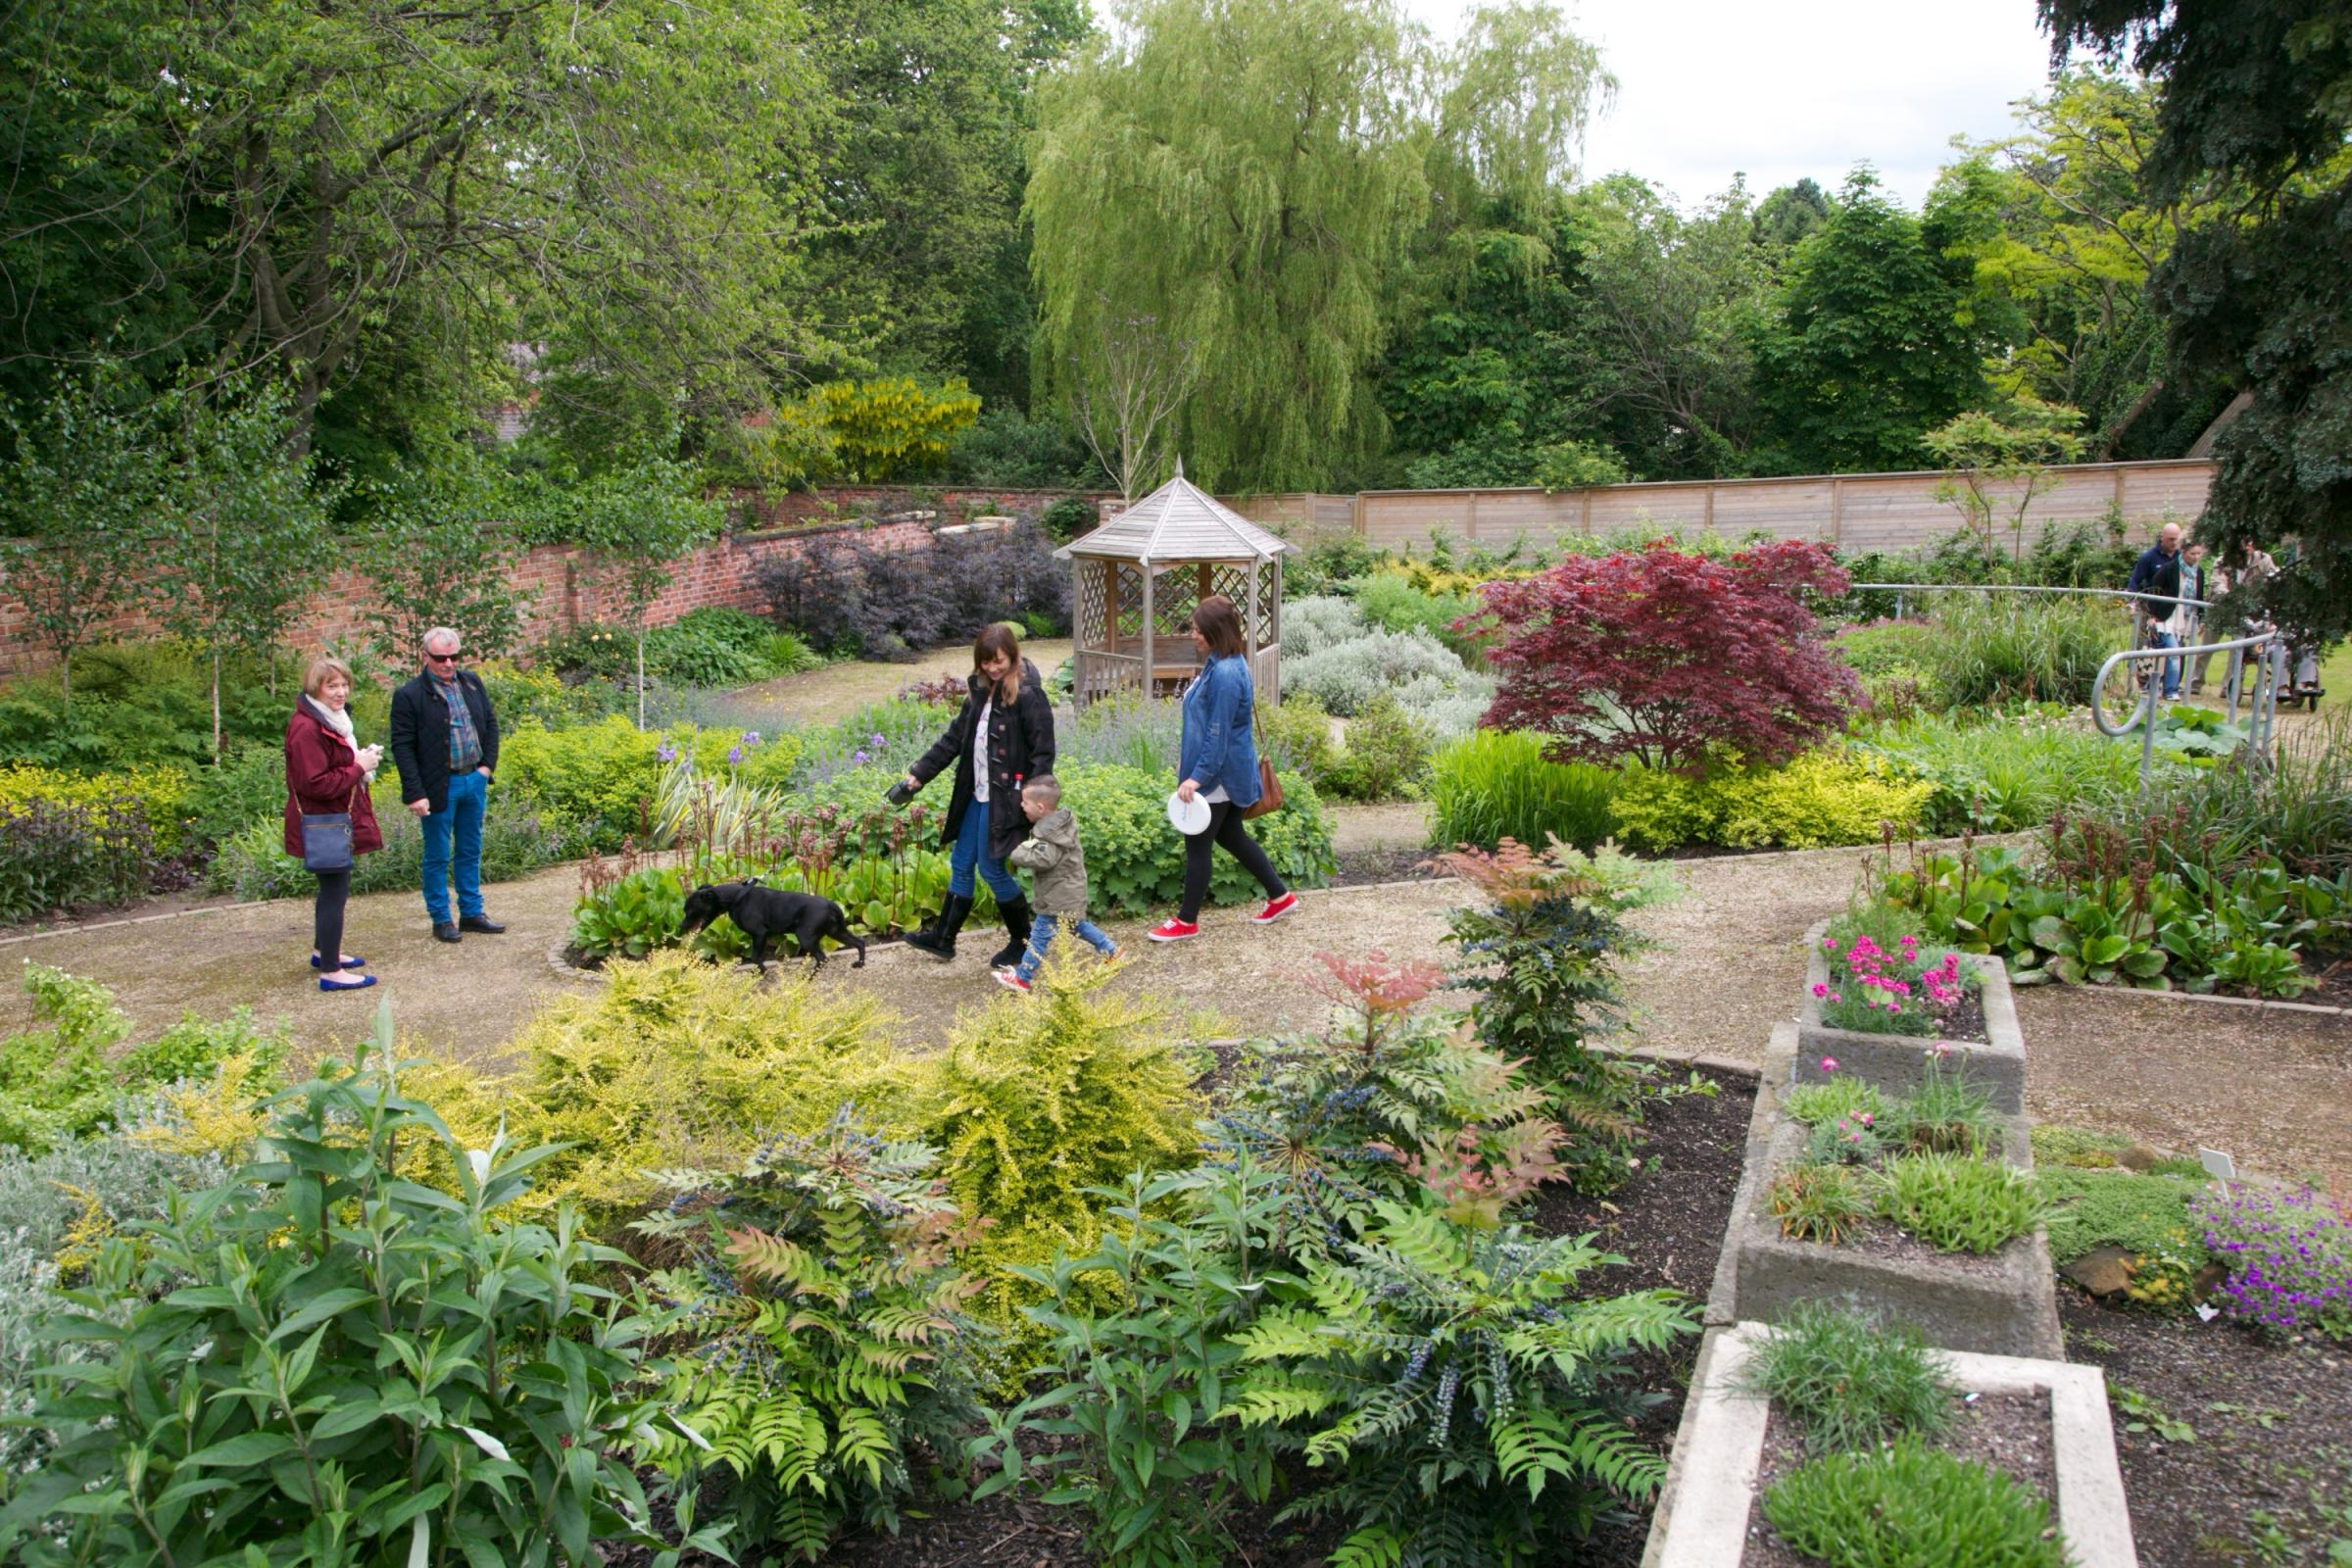 Inside Stewart Park's walled garden